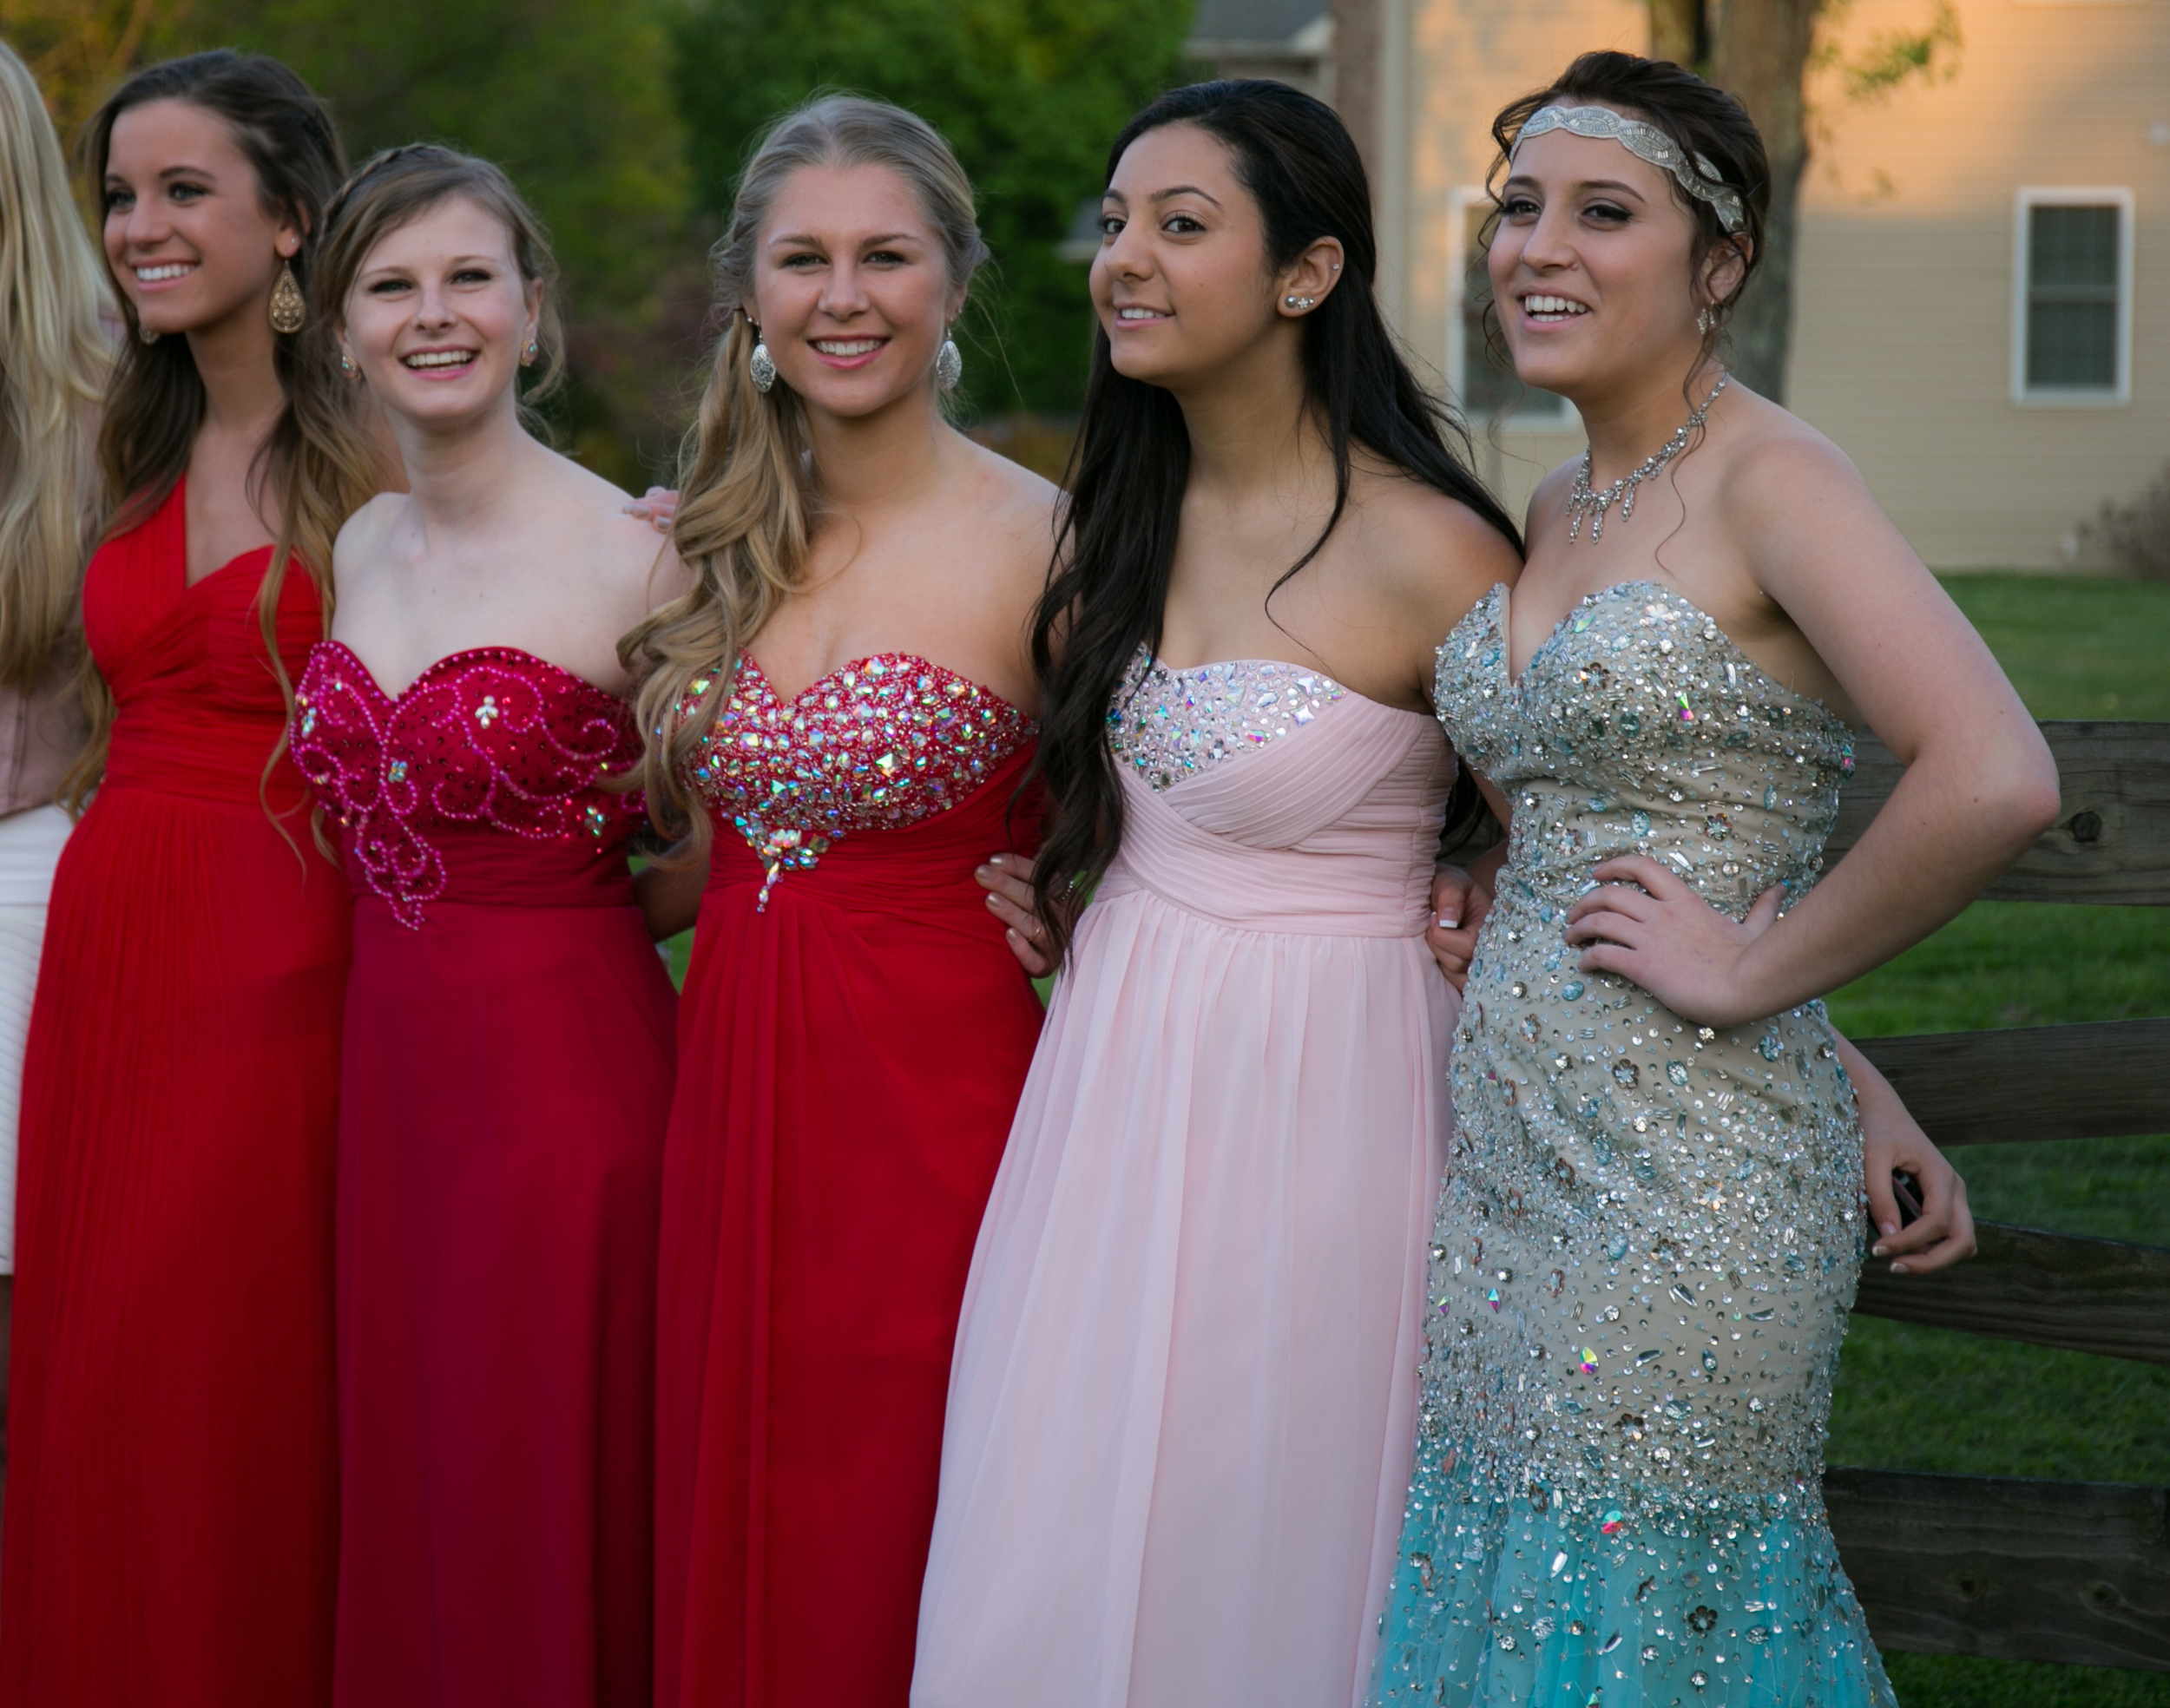 Mount-De-Sales-Pre-Prom-May-2014-134.jpg